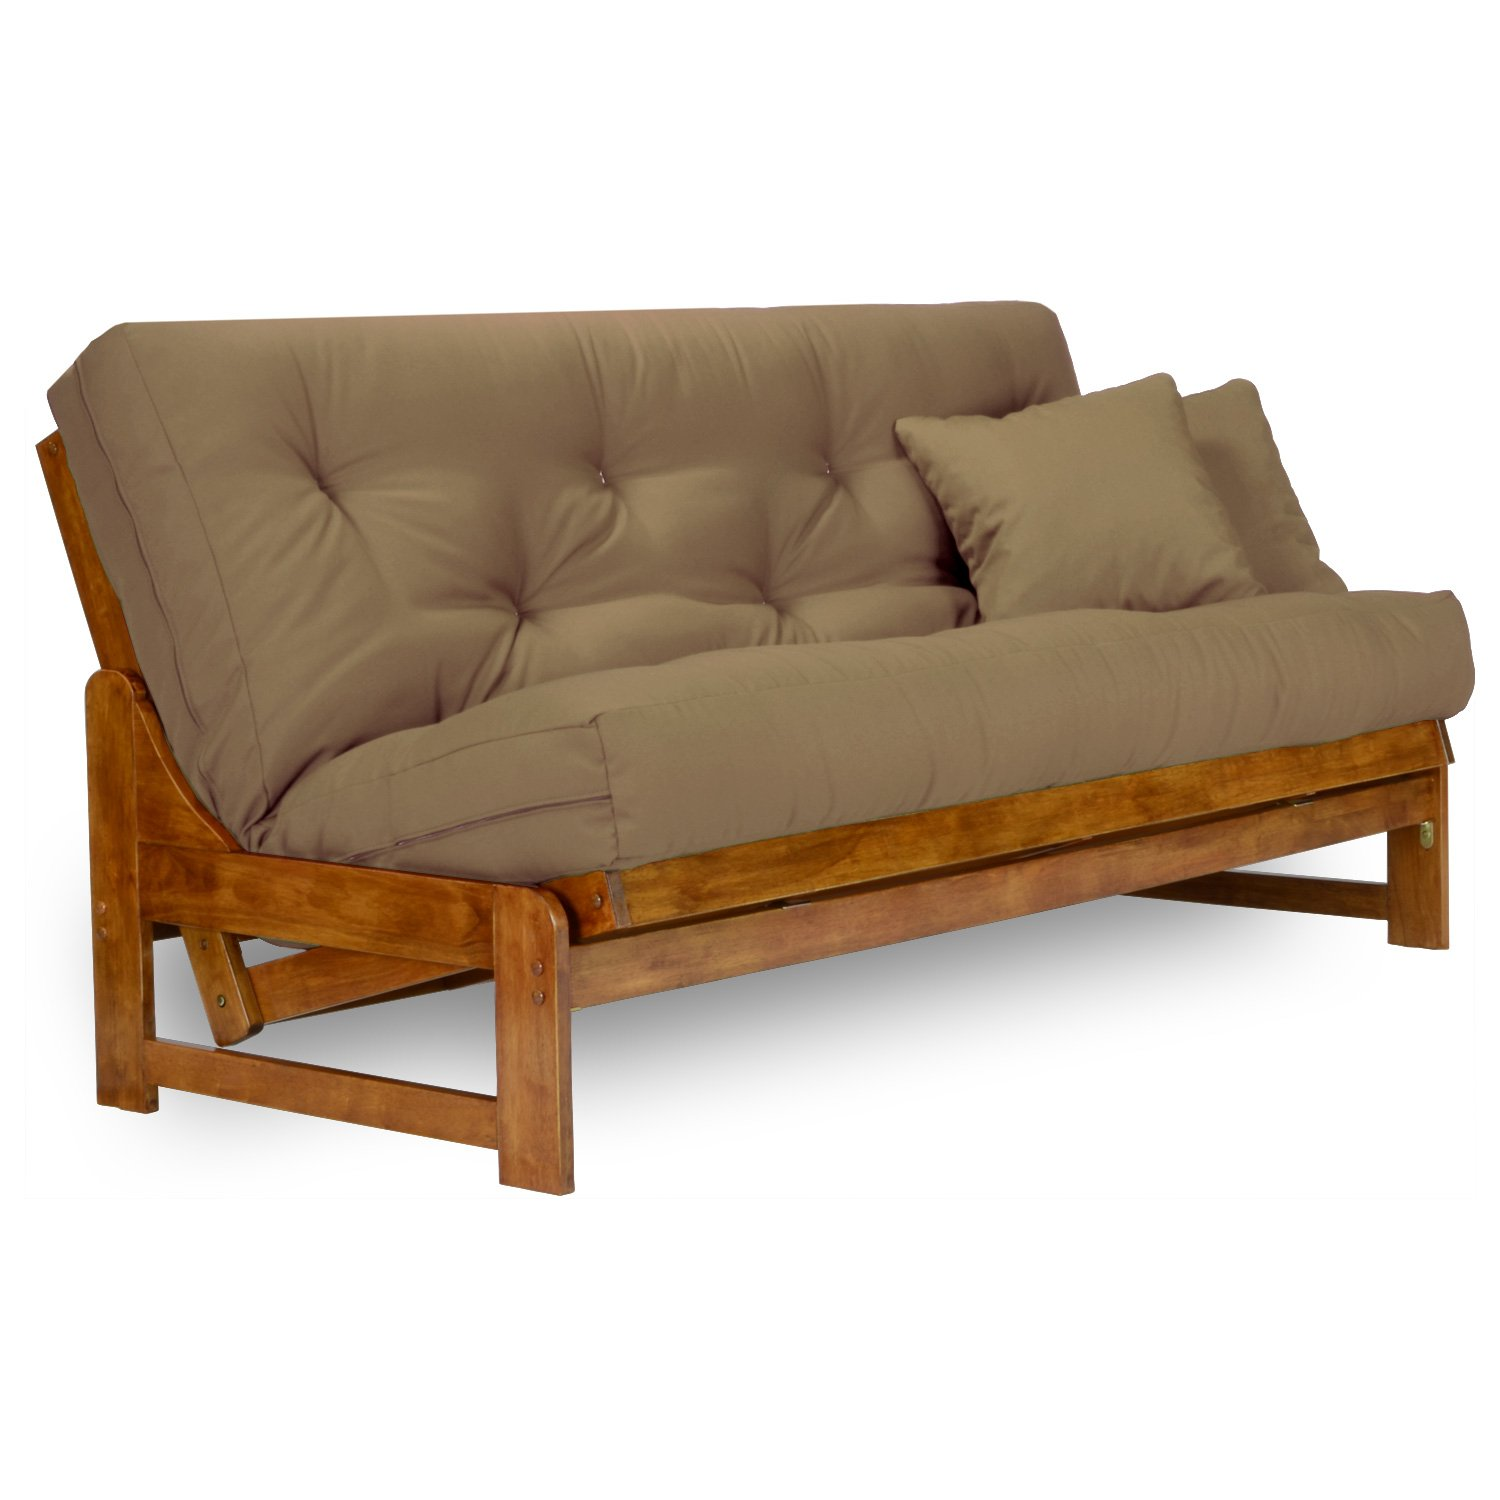 Arden Futon Set - Full Size Futon Frame with Mattress Included (8 Inch  Thick Mattress